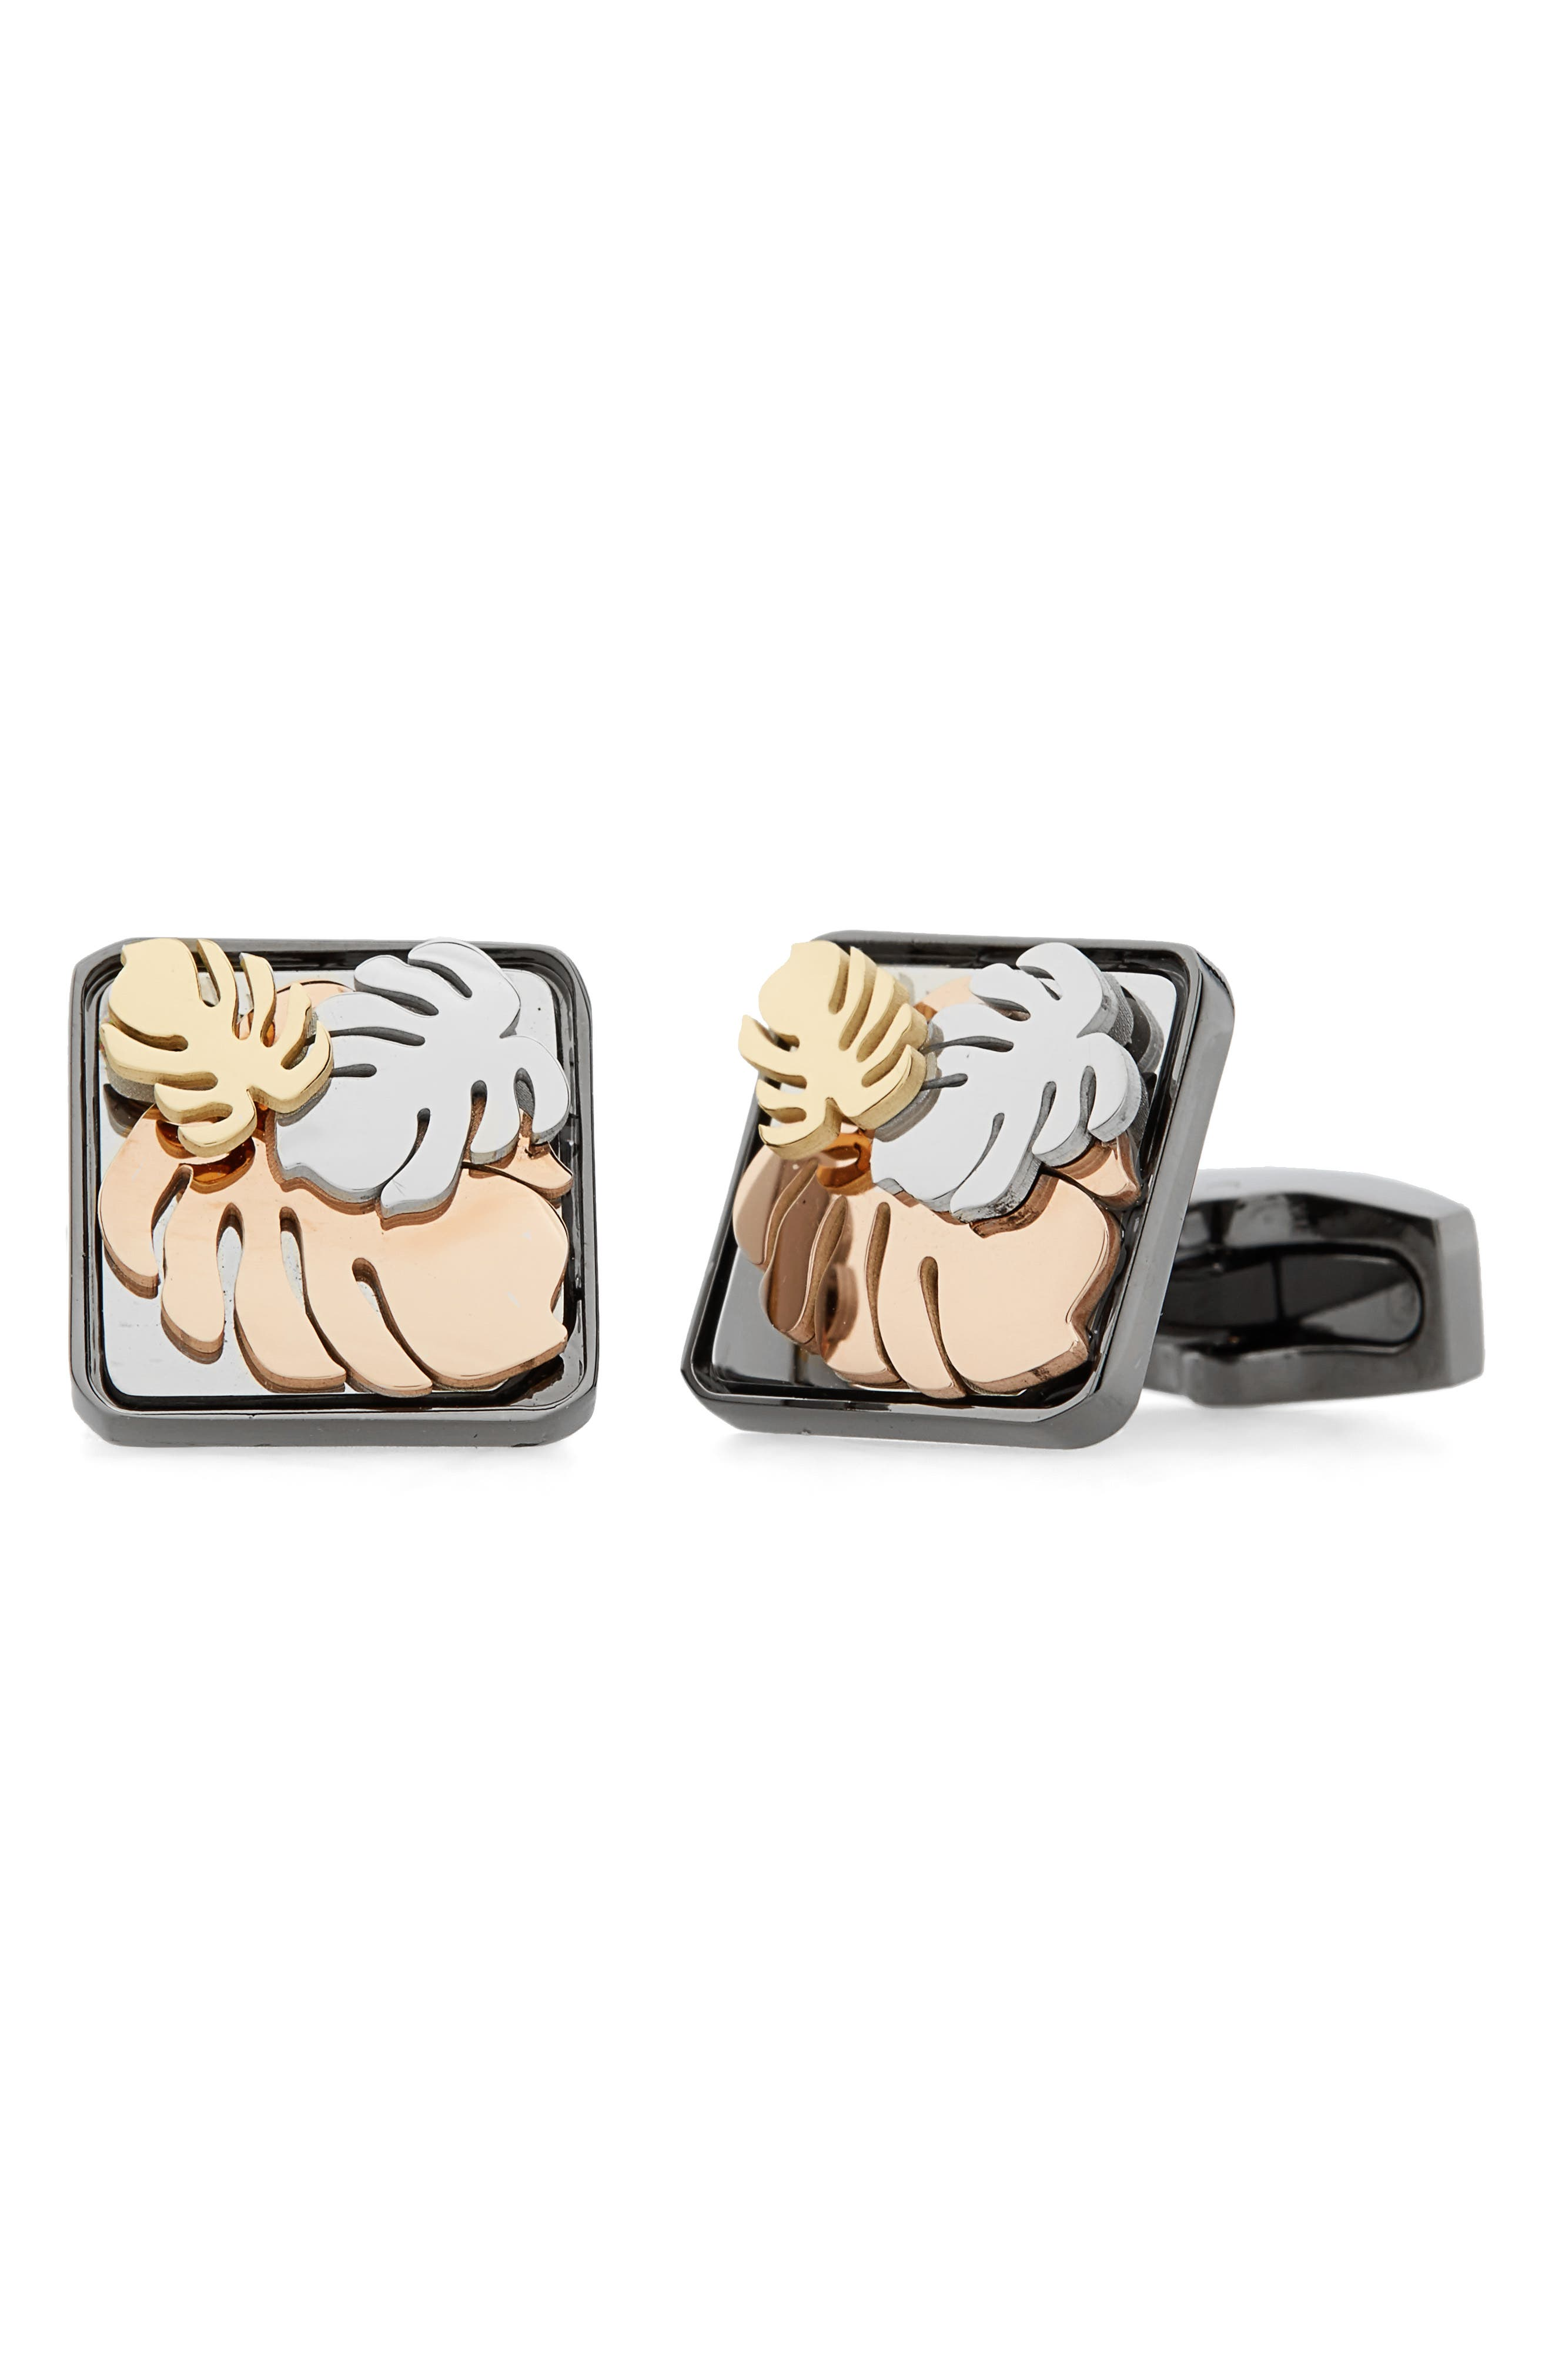 Goals Cuff Links,                             Main thumbnail 1, color,                             022